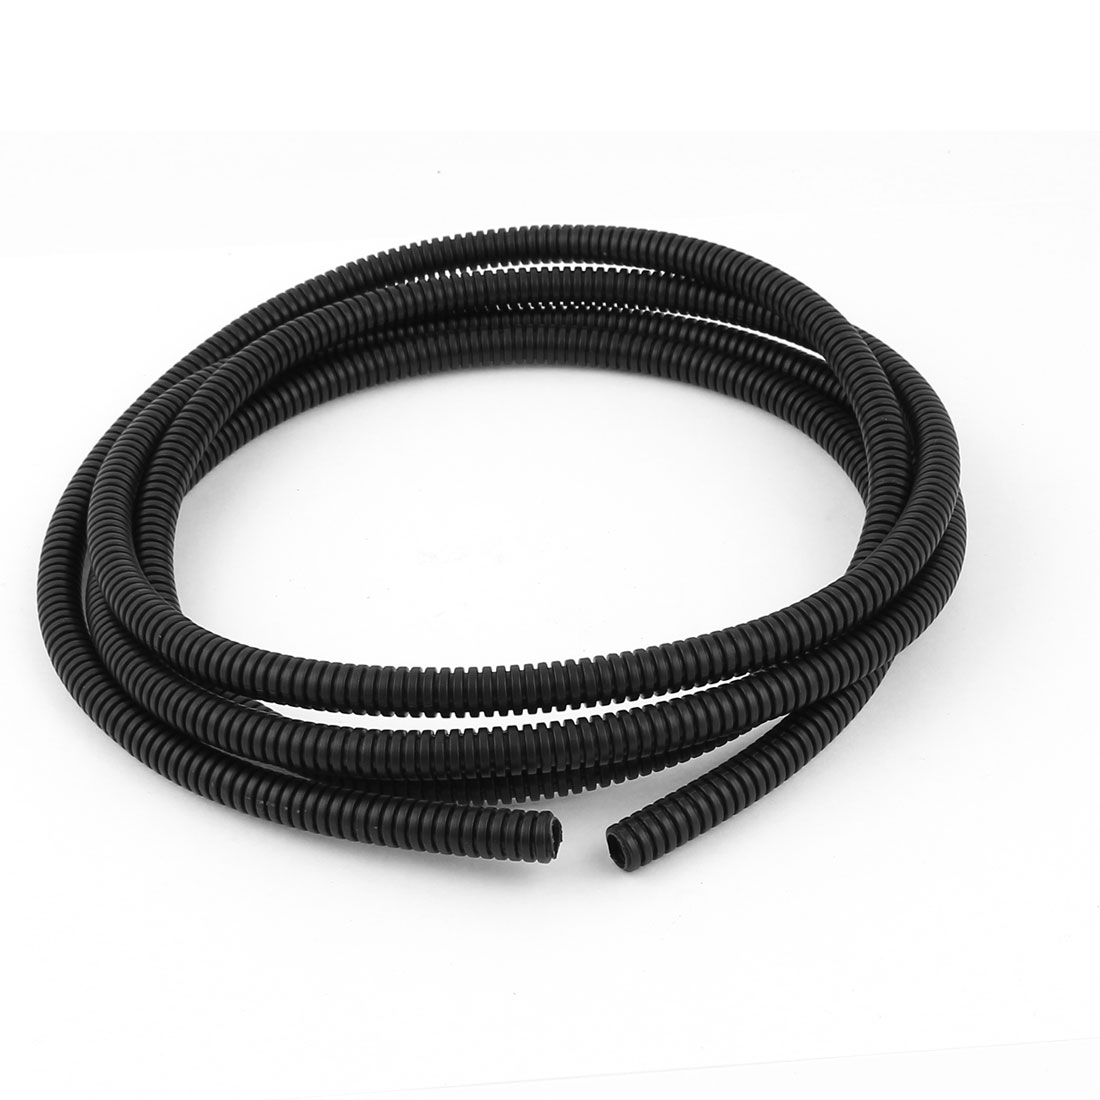 Black Plastic 10mmx7mm Corrugated Wire Tubing Convoluted Hose Tube 6.5Feet Long